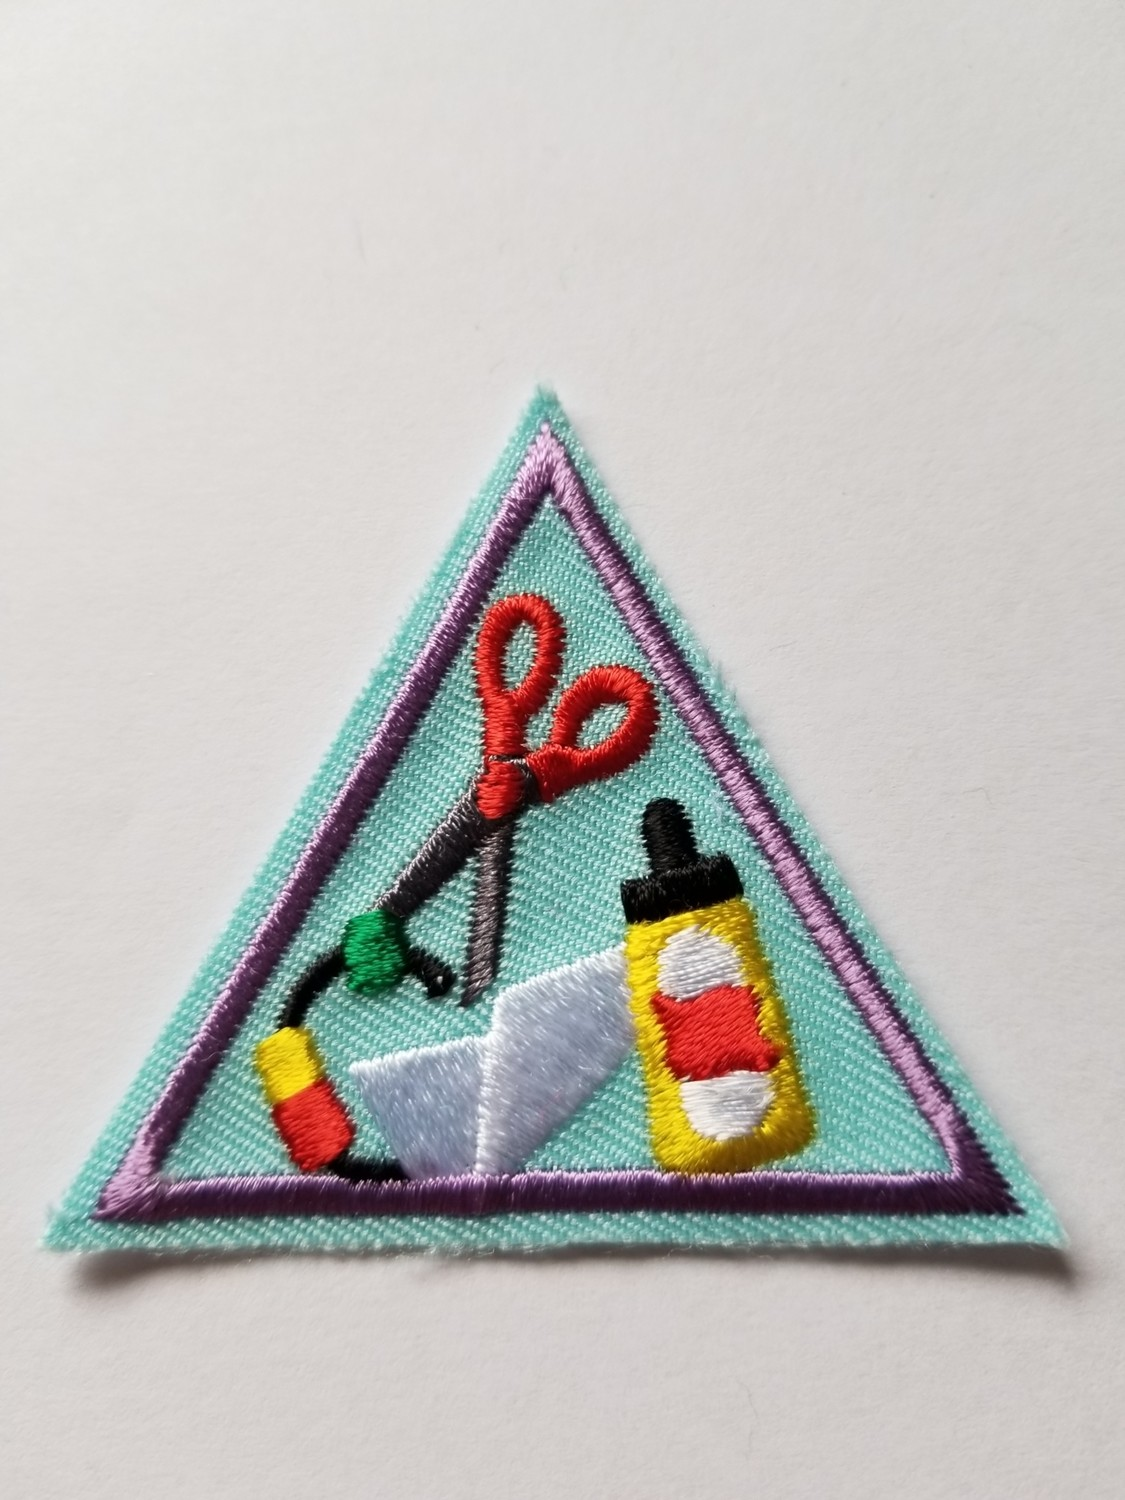 Crafting Triangle